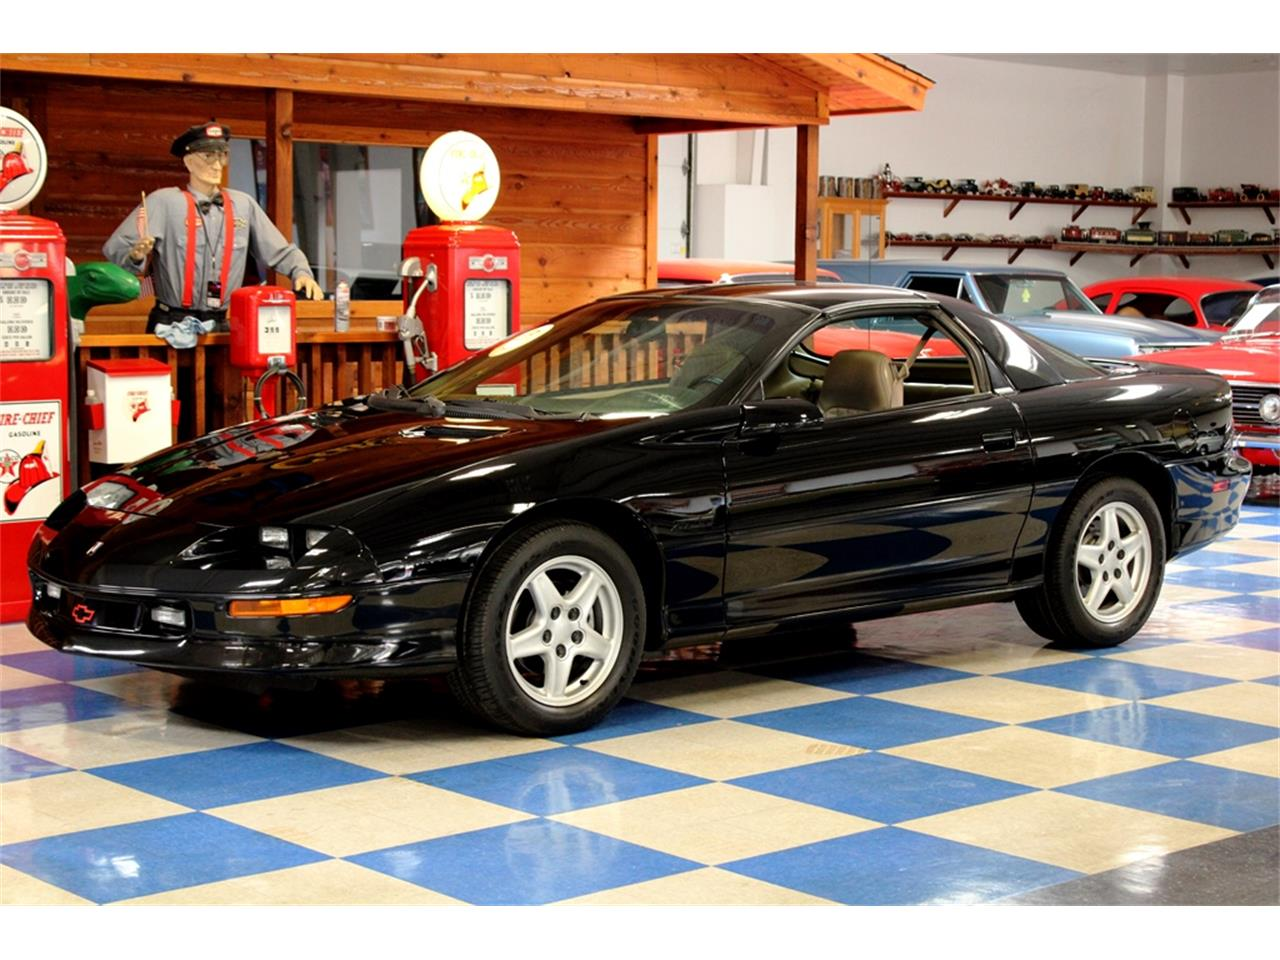 Large Picture of '97 Chevrolet Camaro located in New Braunfels Texas - $14,900.00 - QQJ5